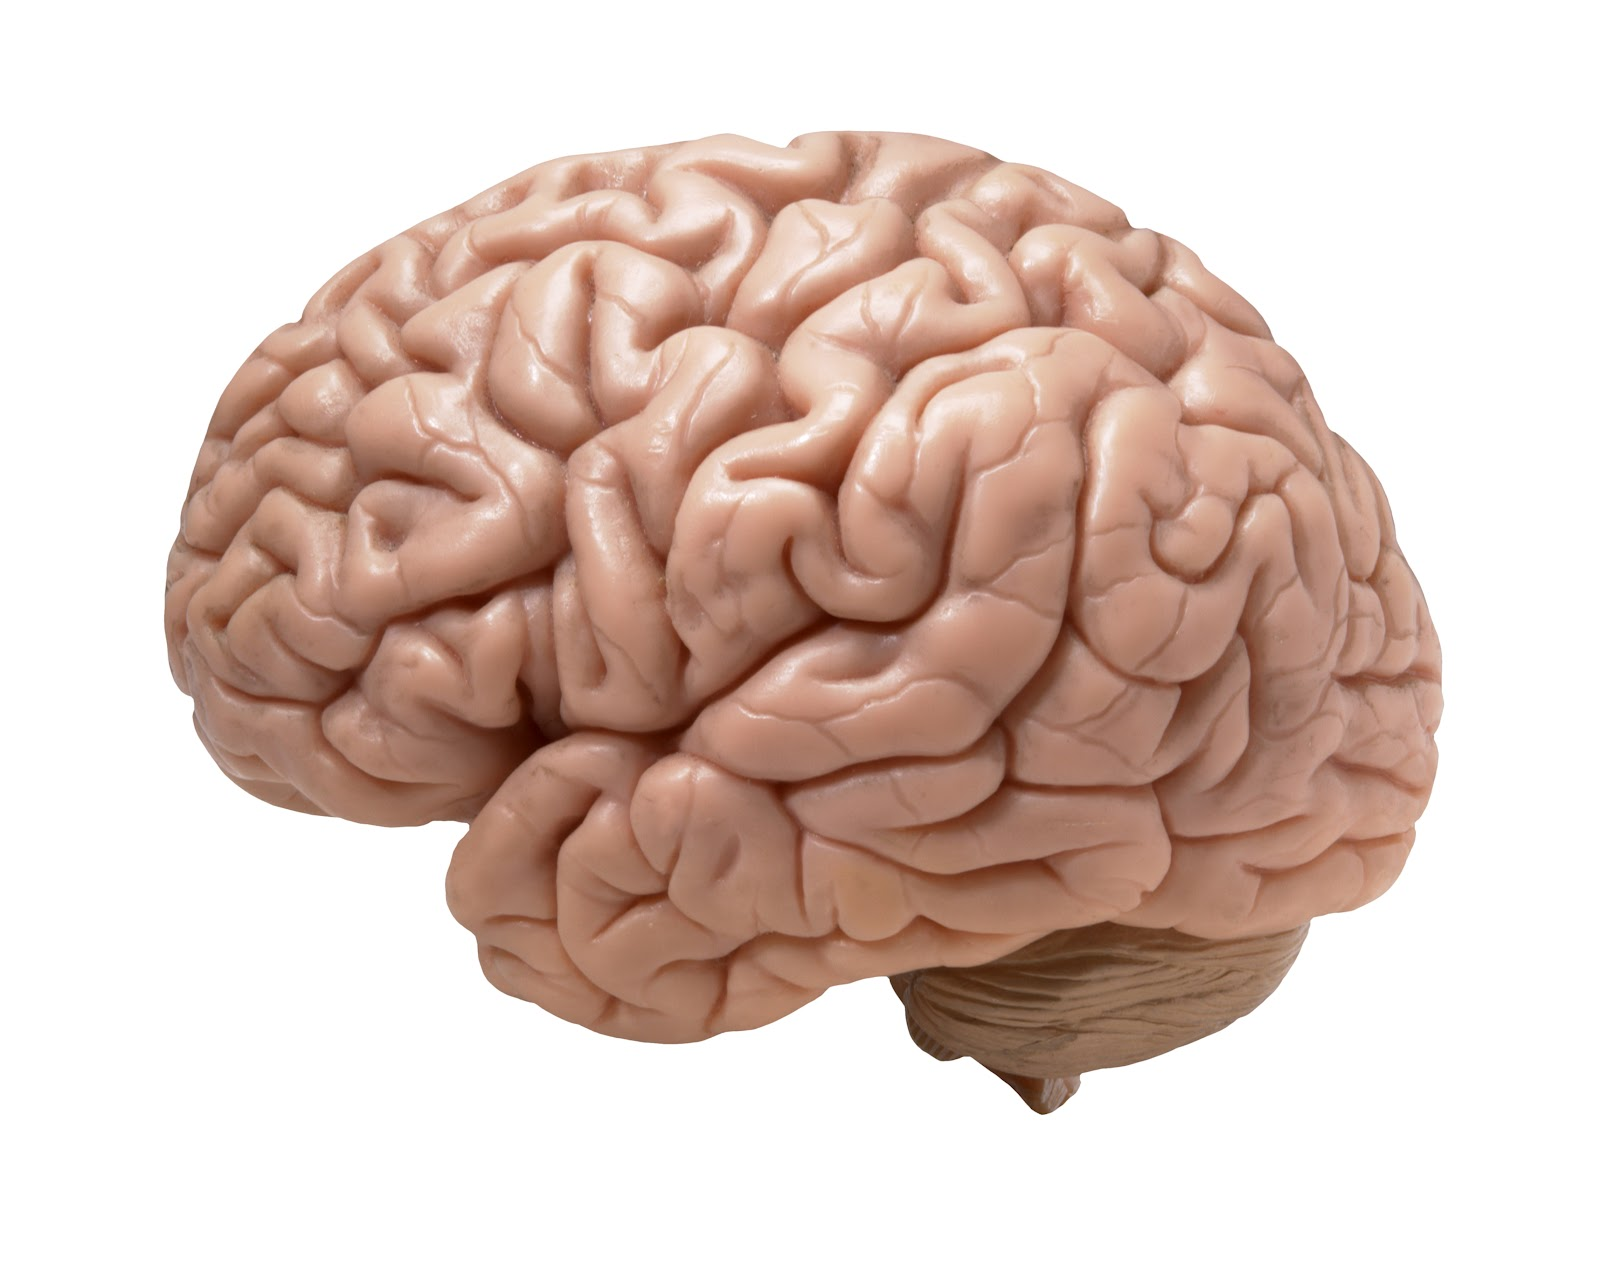 Brain Jigsaw Puzzles - ProProfs Jigsaw Puzzle Games